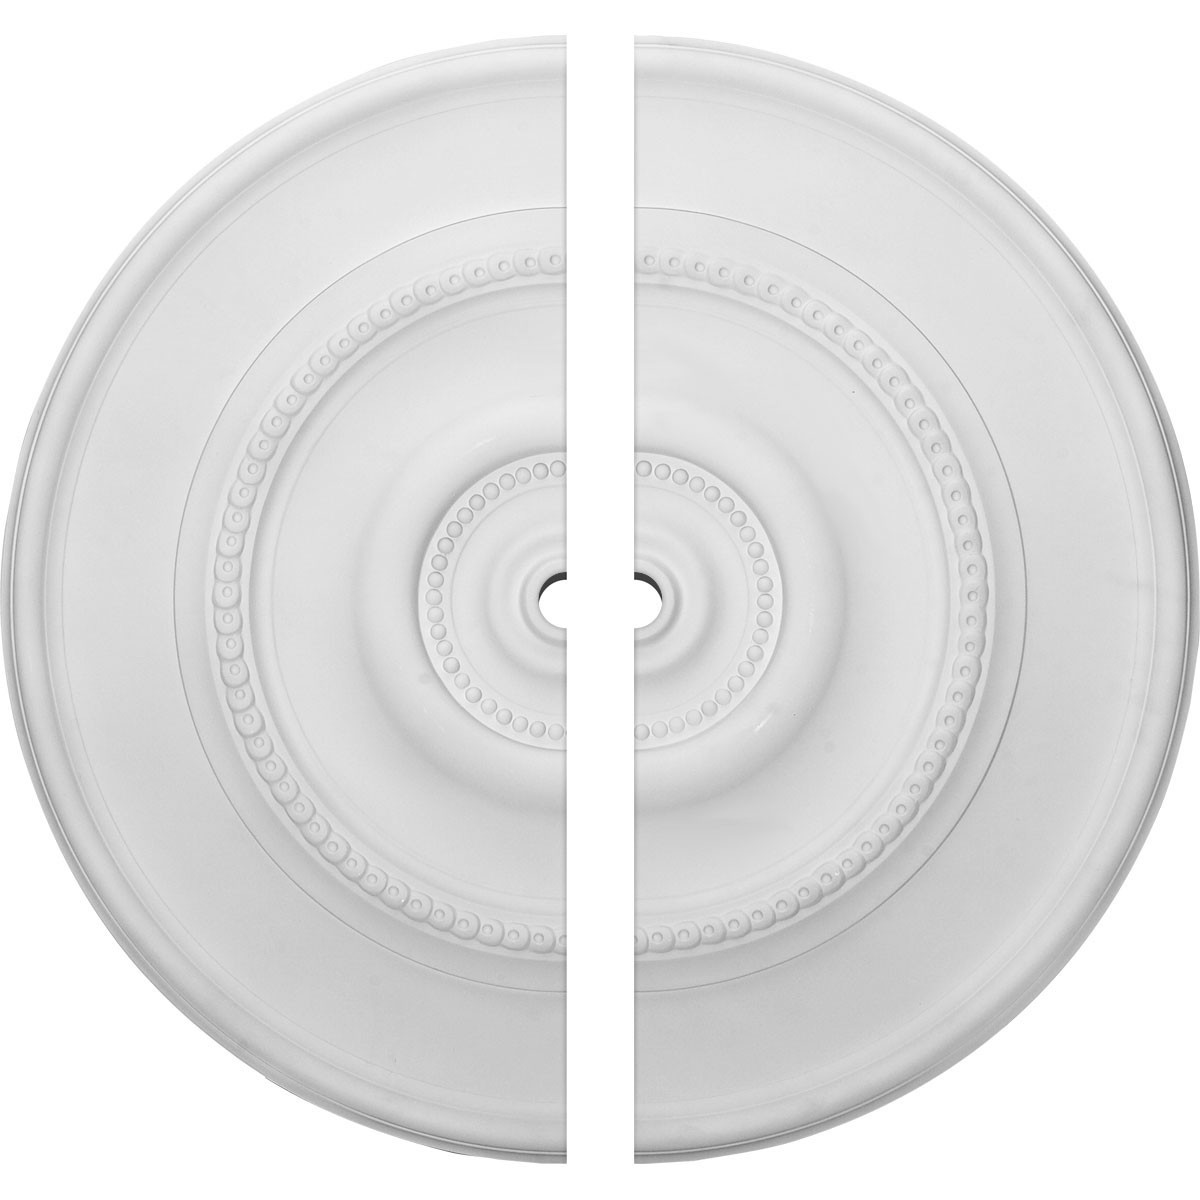 """EM-CM30DY2-01500 - 30""""OD x 1 1/2""""ID x 2 1/4""""P Dylar Ceiling Medallion, Two Piece (Fits Canopies up to 6 1/4"""")"""